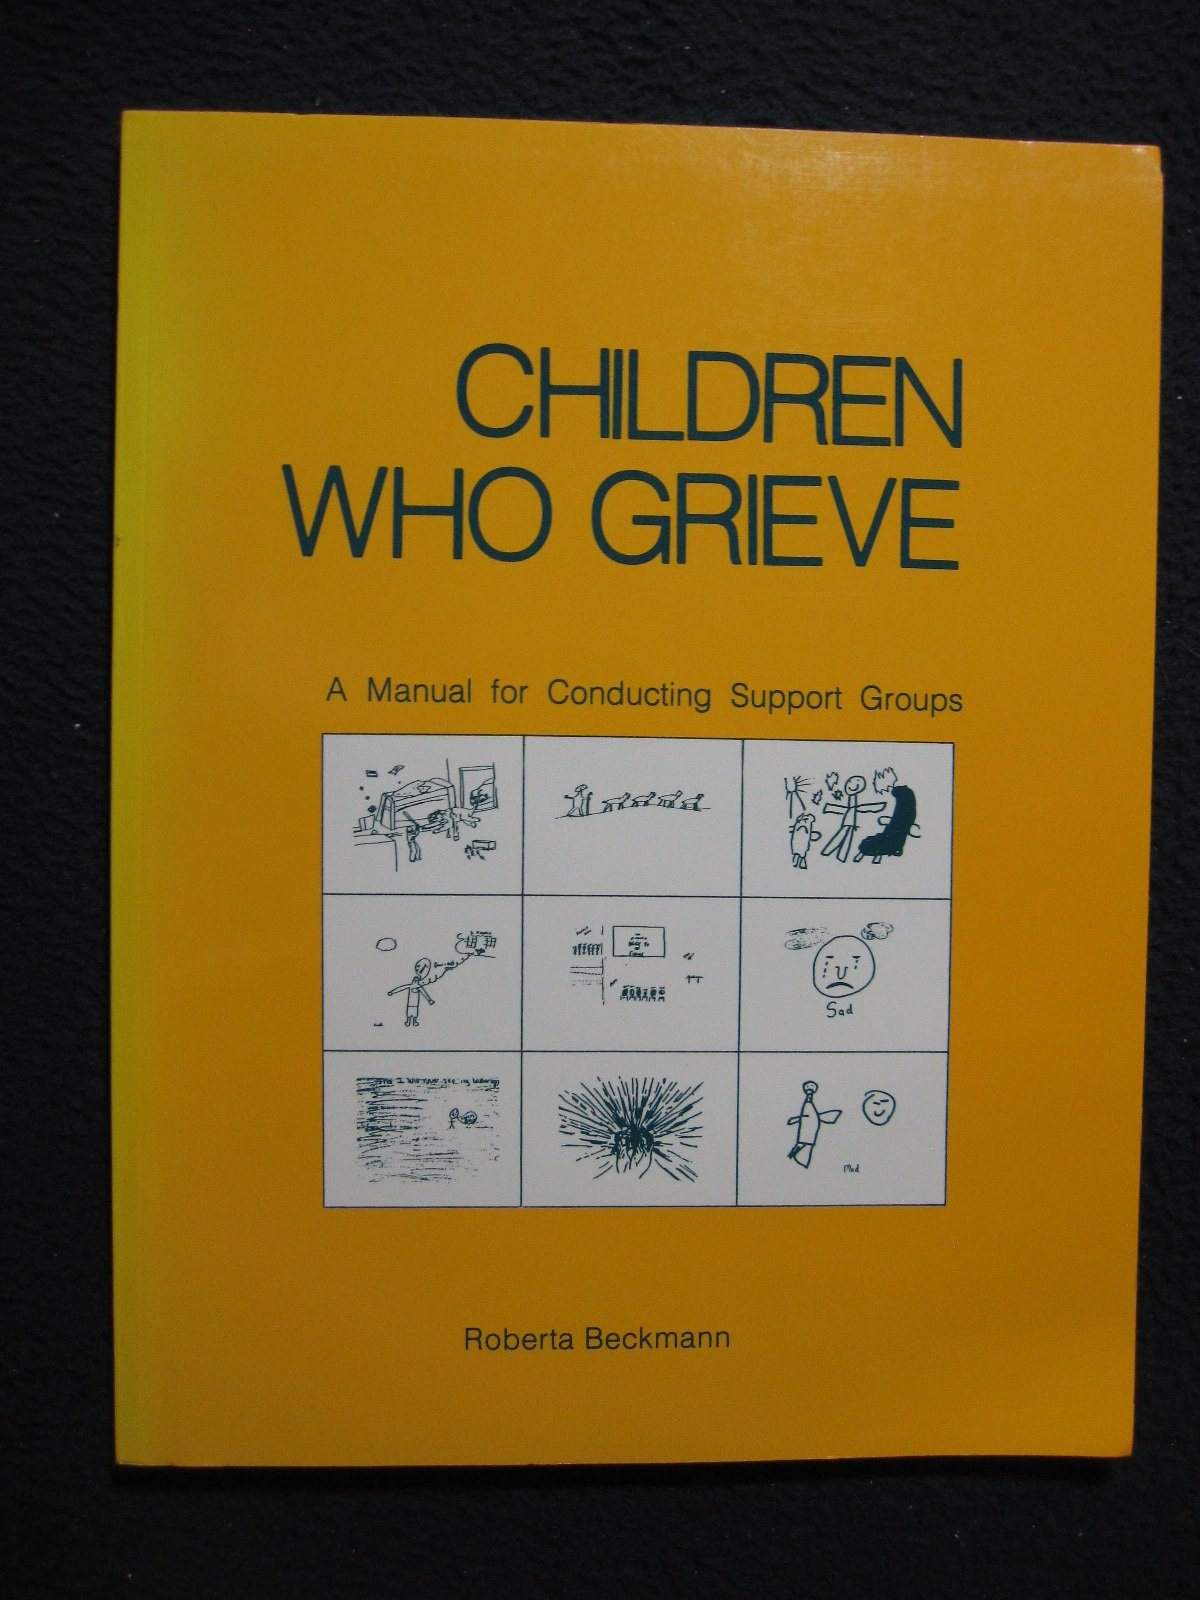 Children Who Grieve: A Manual for Conducting Support Groups: Roberta  Beckmann: 9781556910500: Books - Amazon.ca